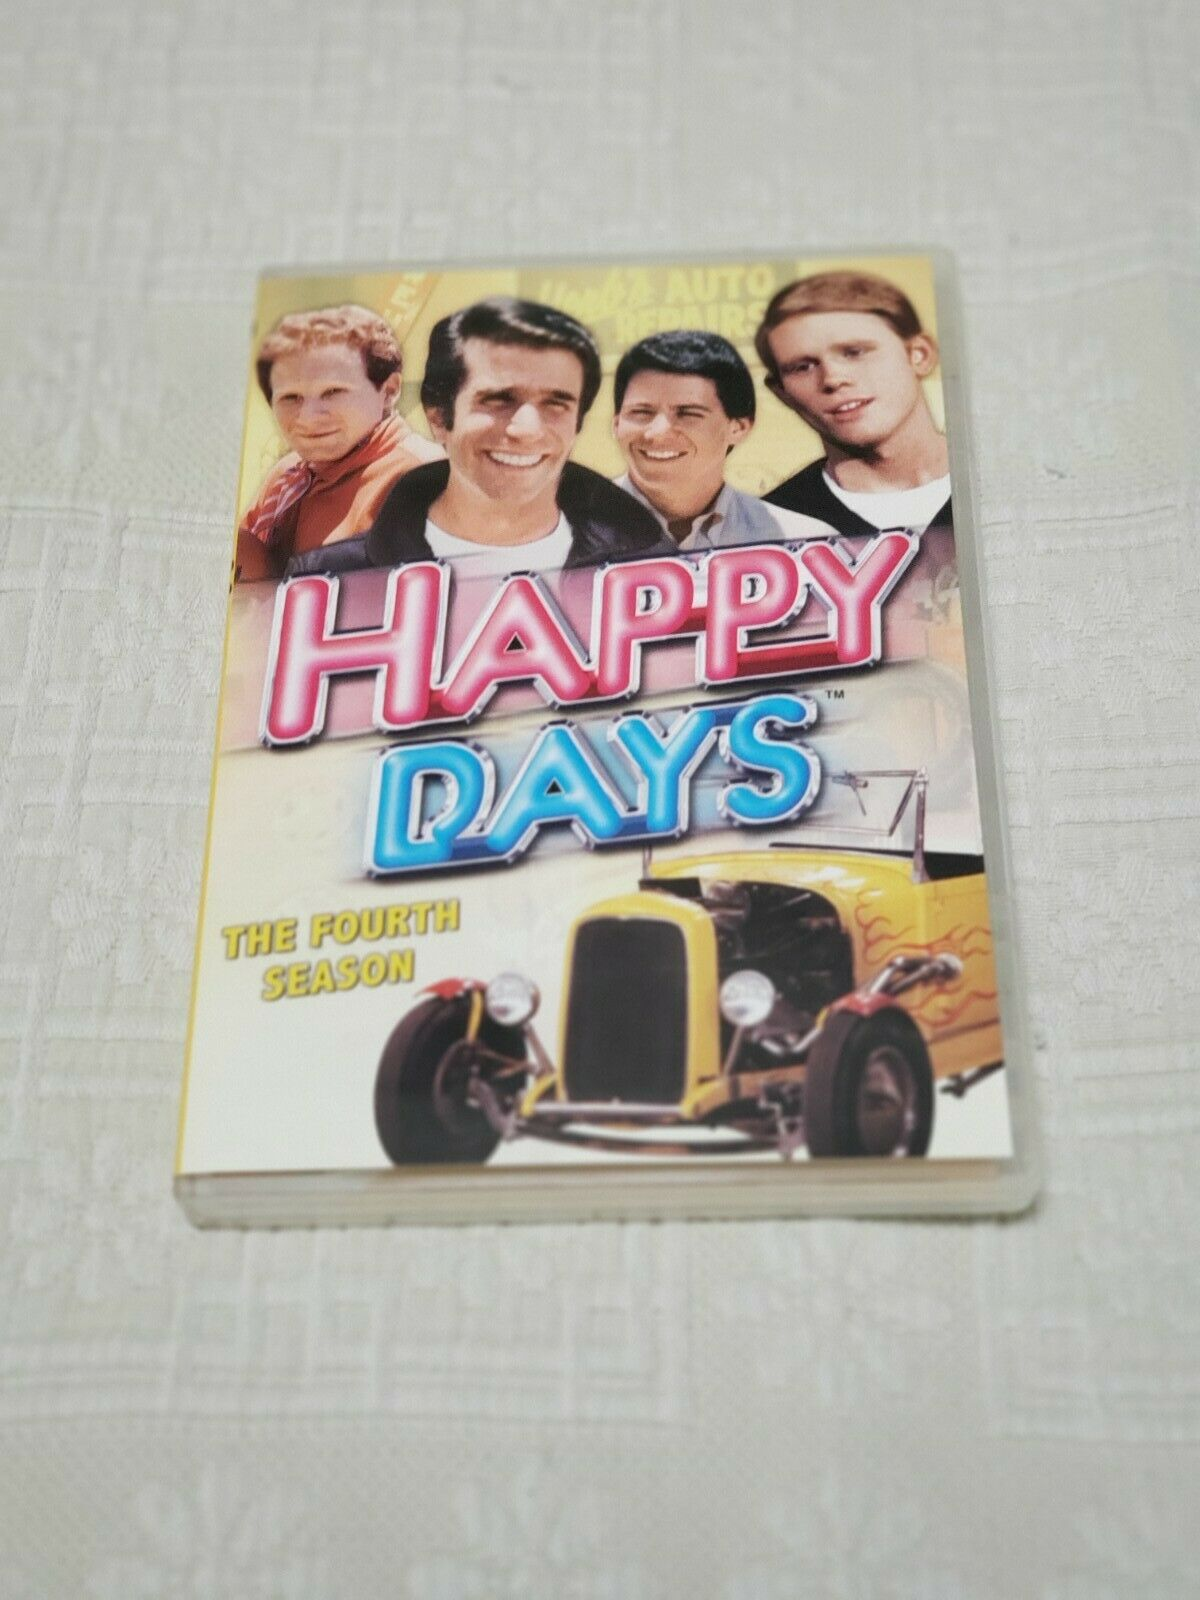 HAPPY DAYS SEASON 4 Like New Sealed 4 DVD s Never Played  - $5.00